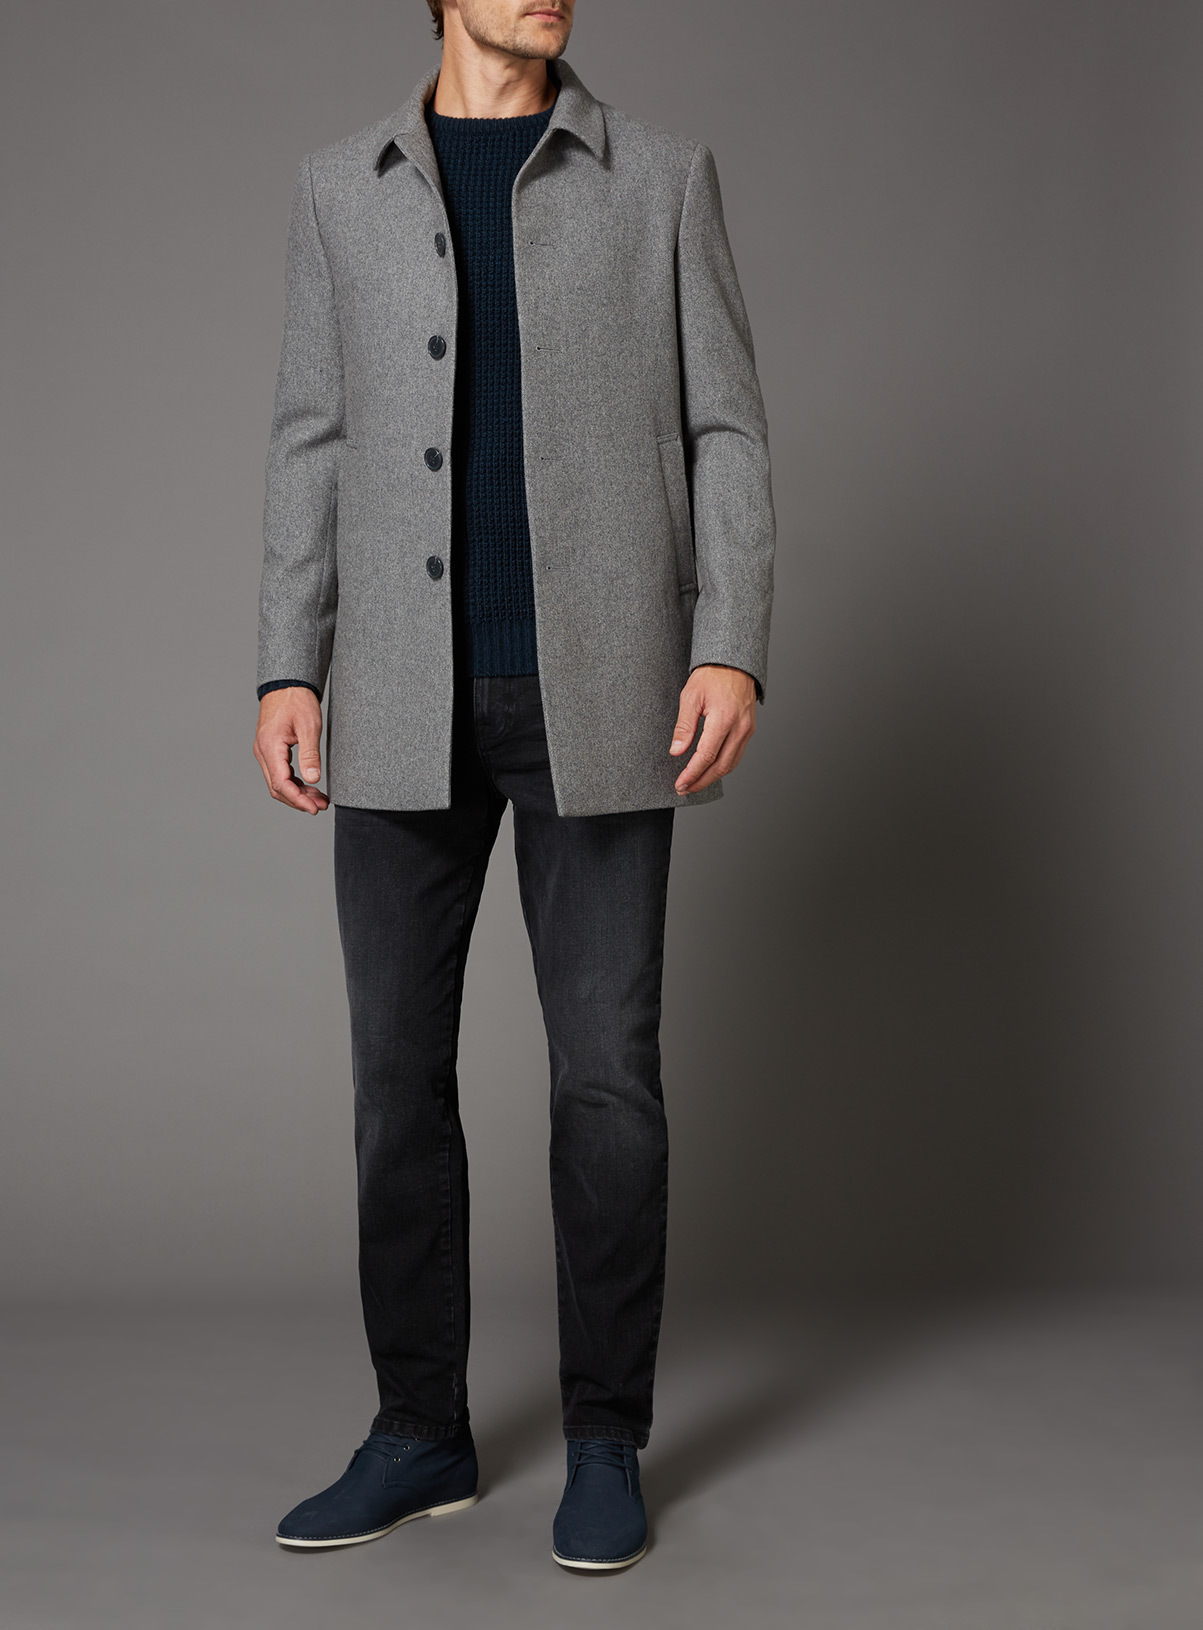 Mens Grey Herringbone Slim Fit Car Coat | Tu clothing